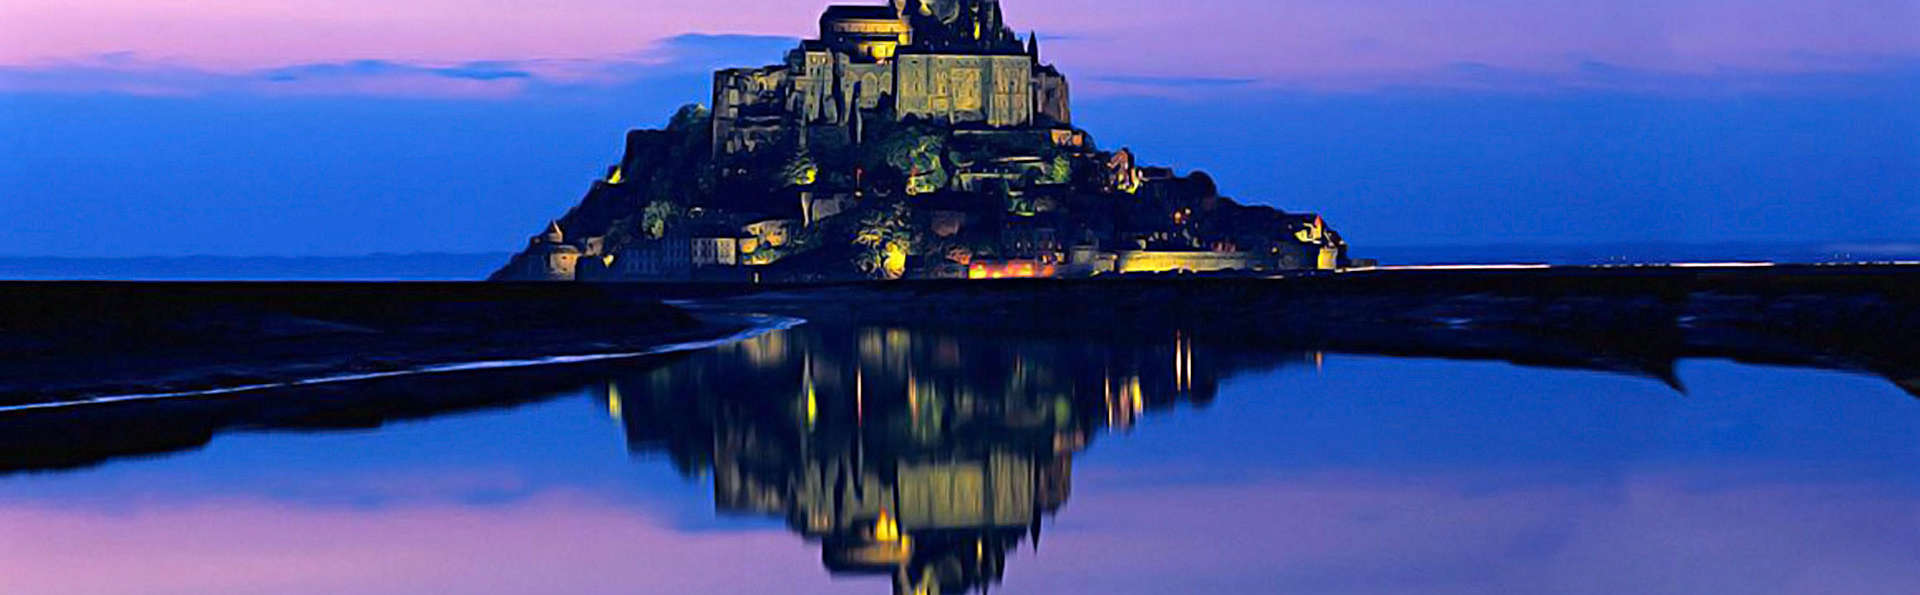 Hôtel Mercure Mont Saint Michel - edit_saint_michel2.jpg